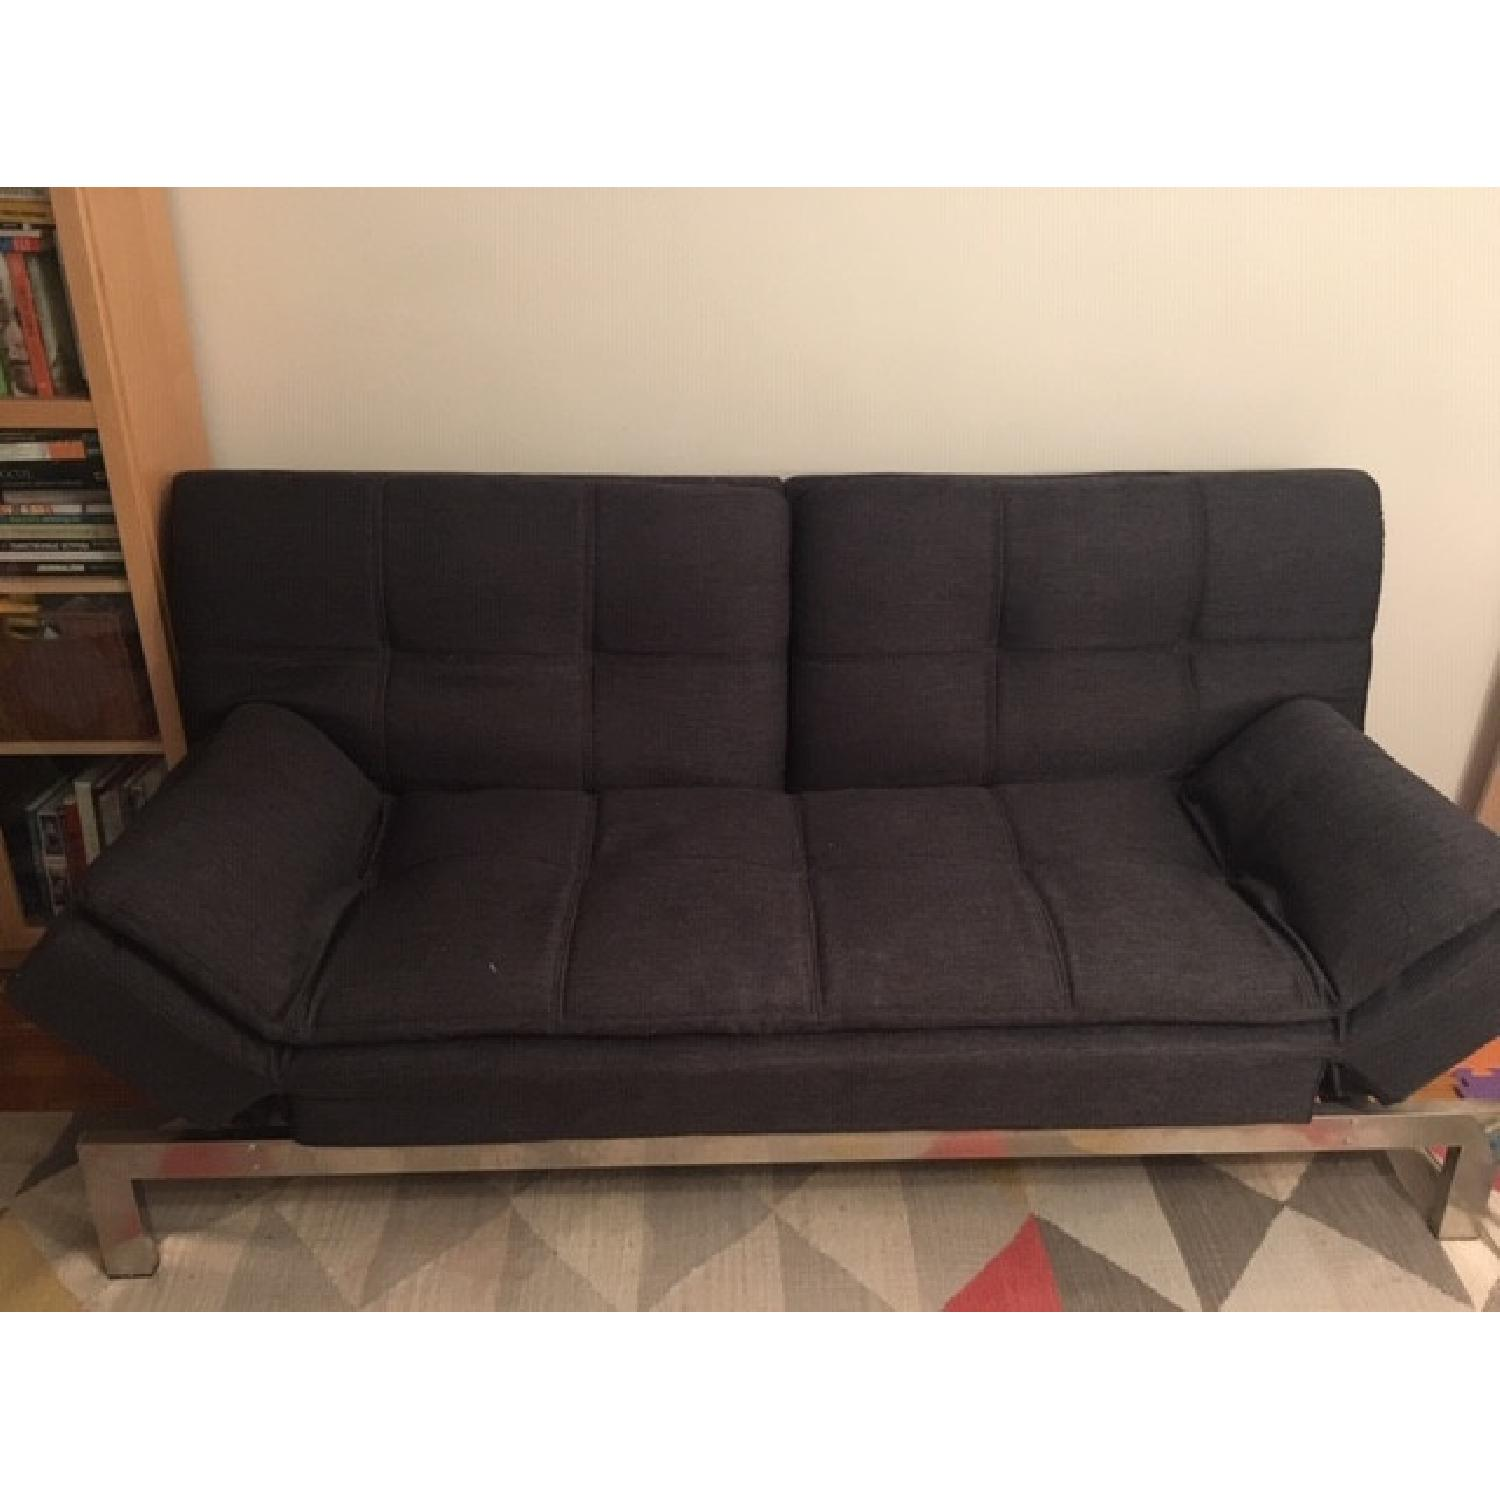 Lifestyle Solutions Serta Convertible Sofa - image-4